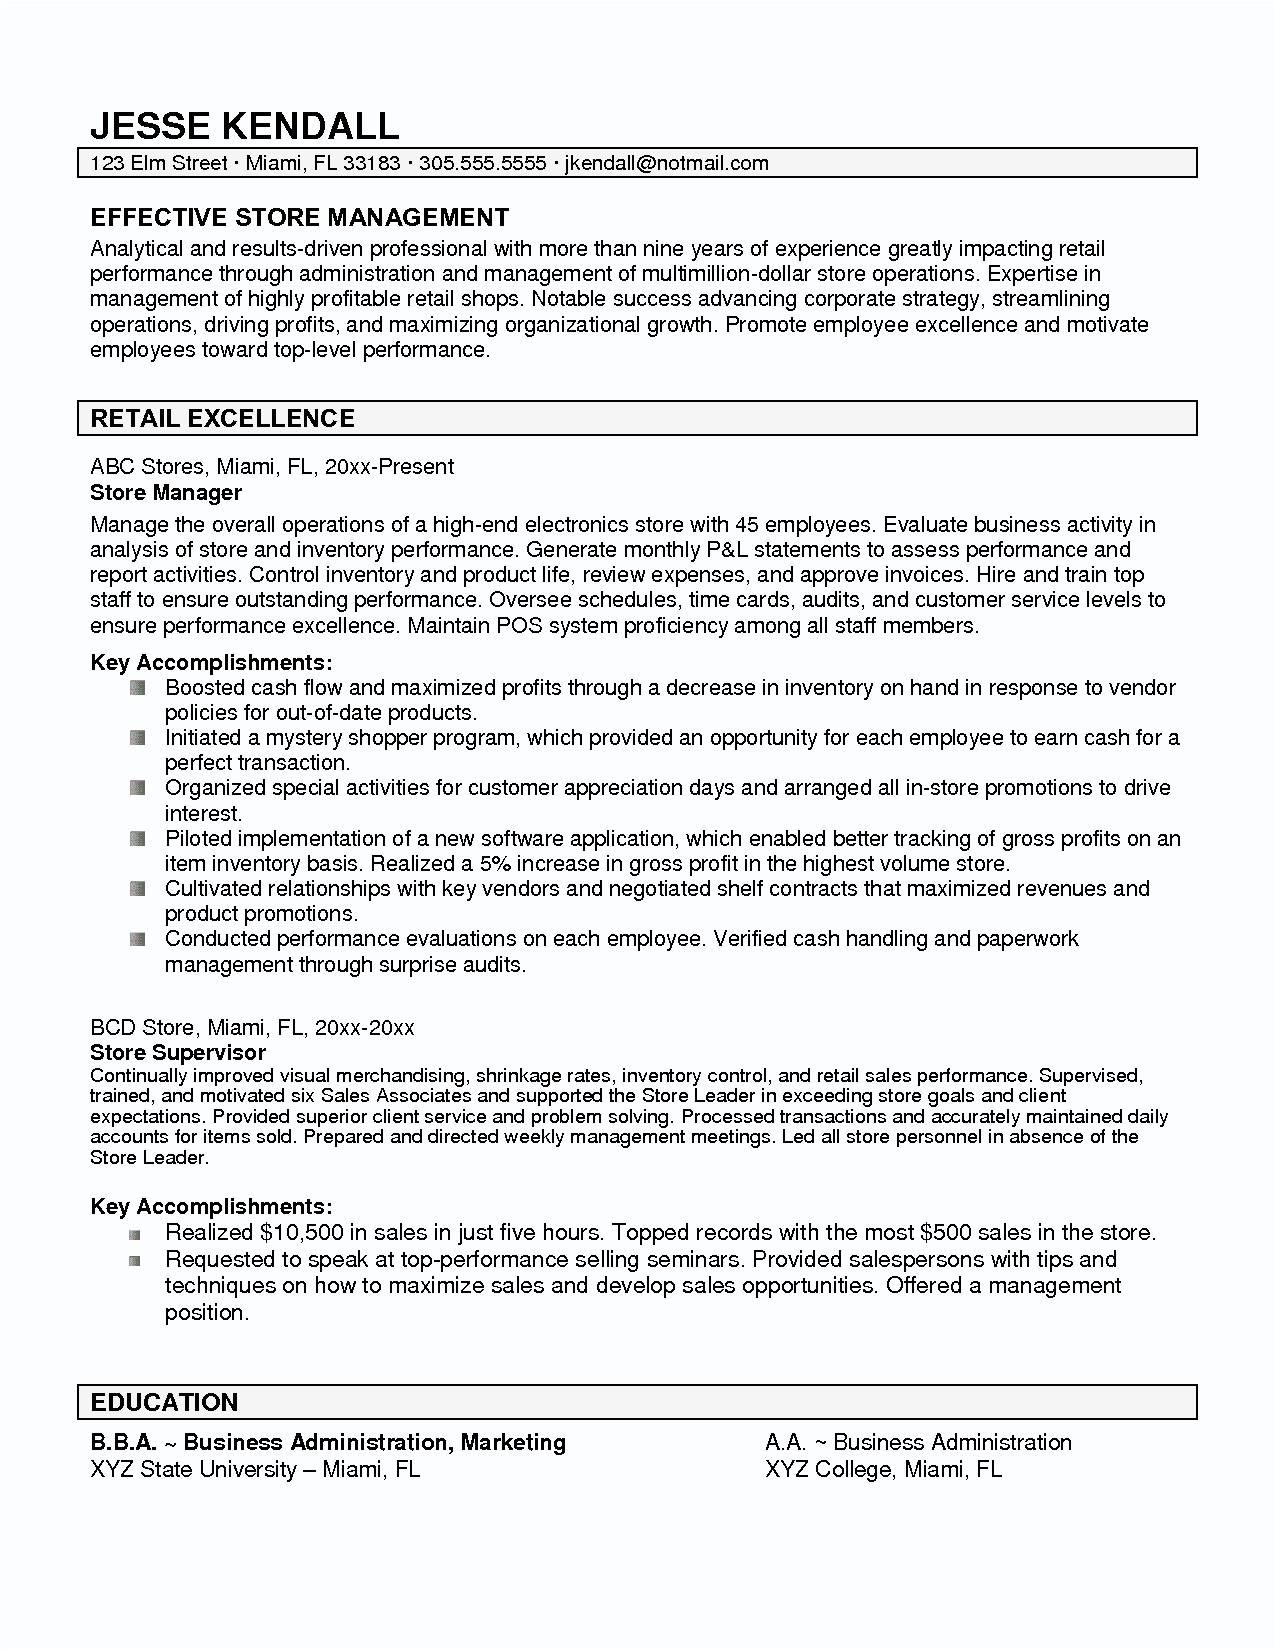 Resume Samples for Faculty Positions Resume Samples for Faculty Positions Fresh Essay the Great